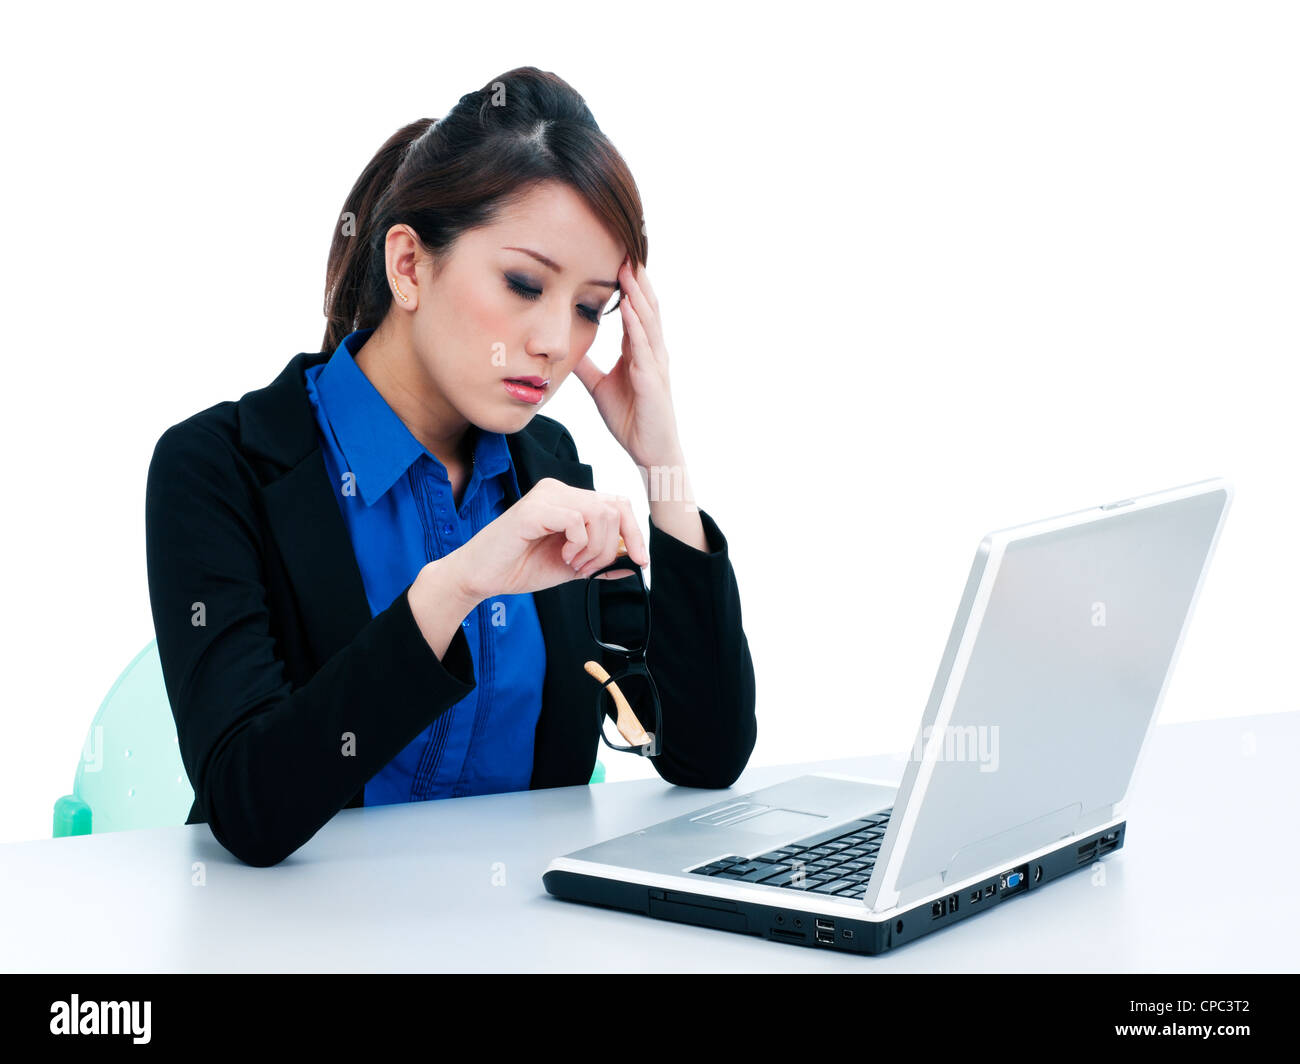 Tired businesswoman at work - Stock Image